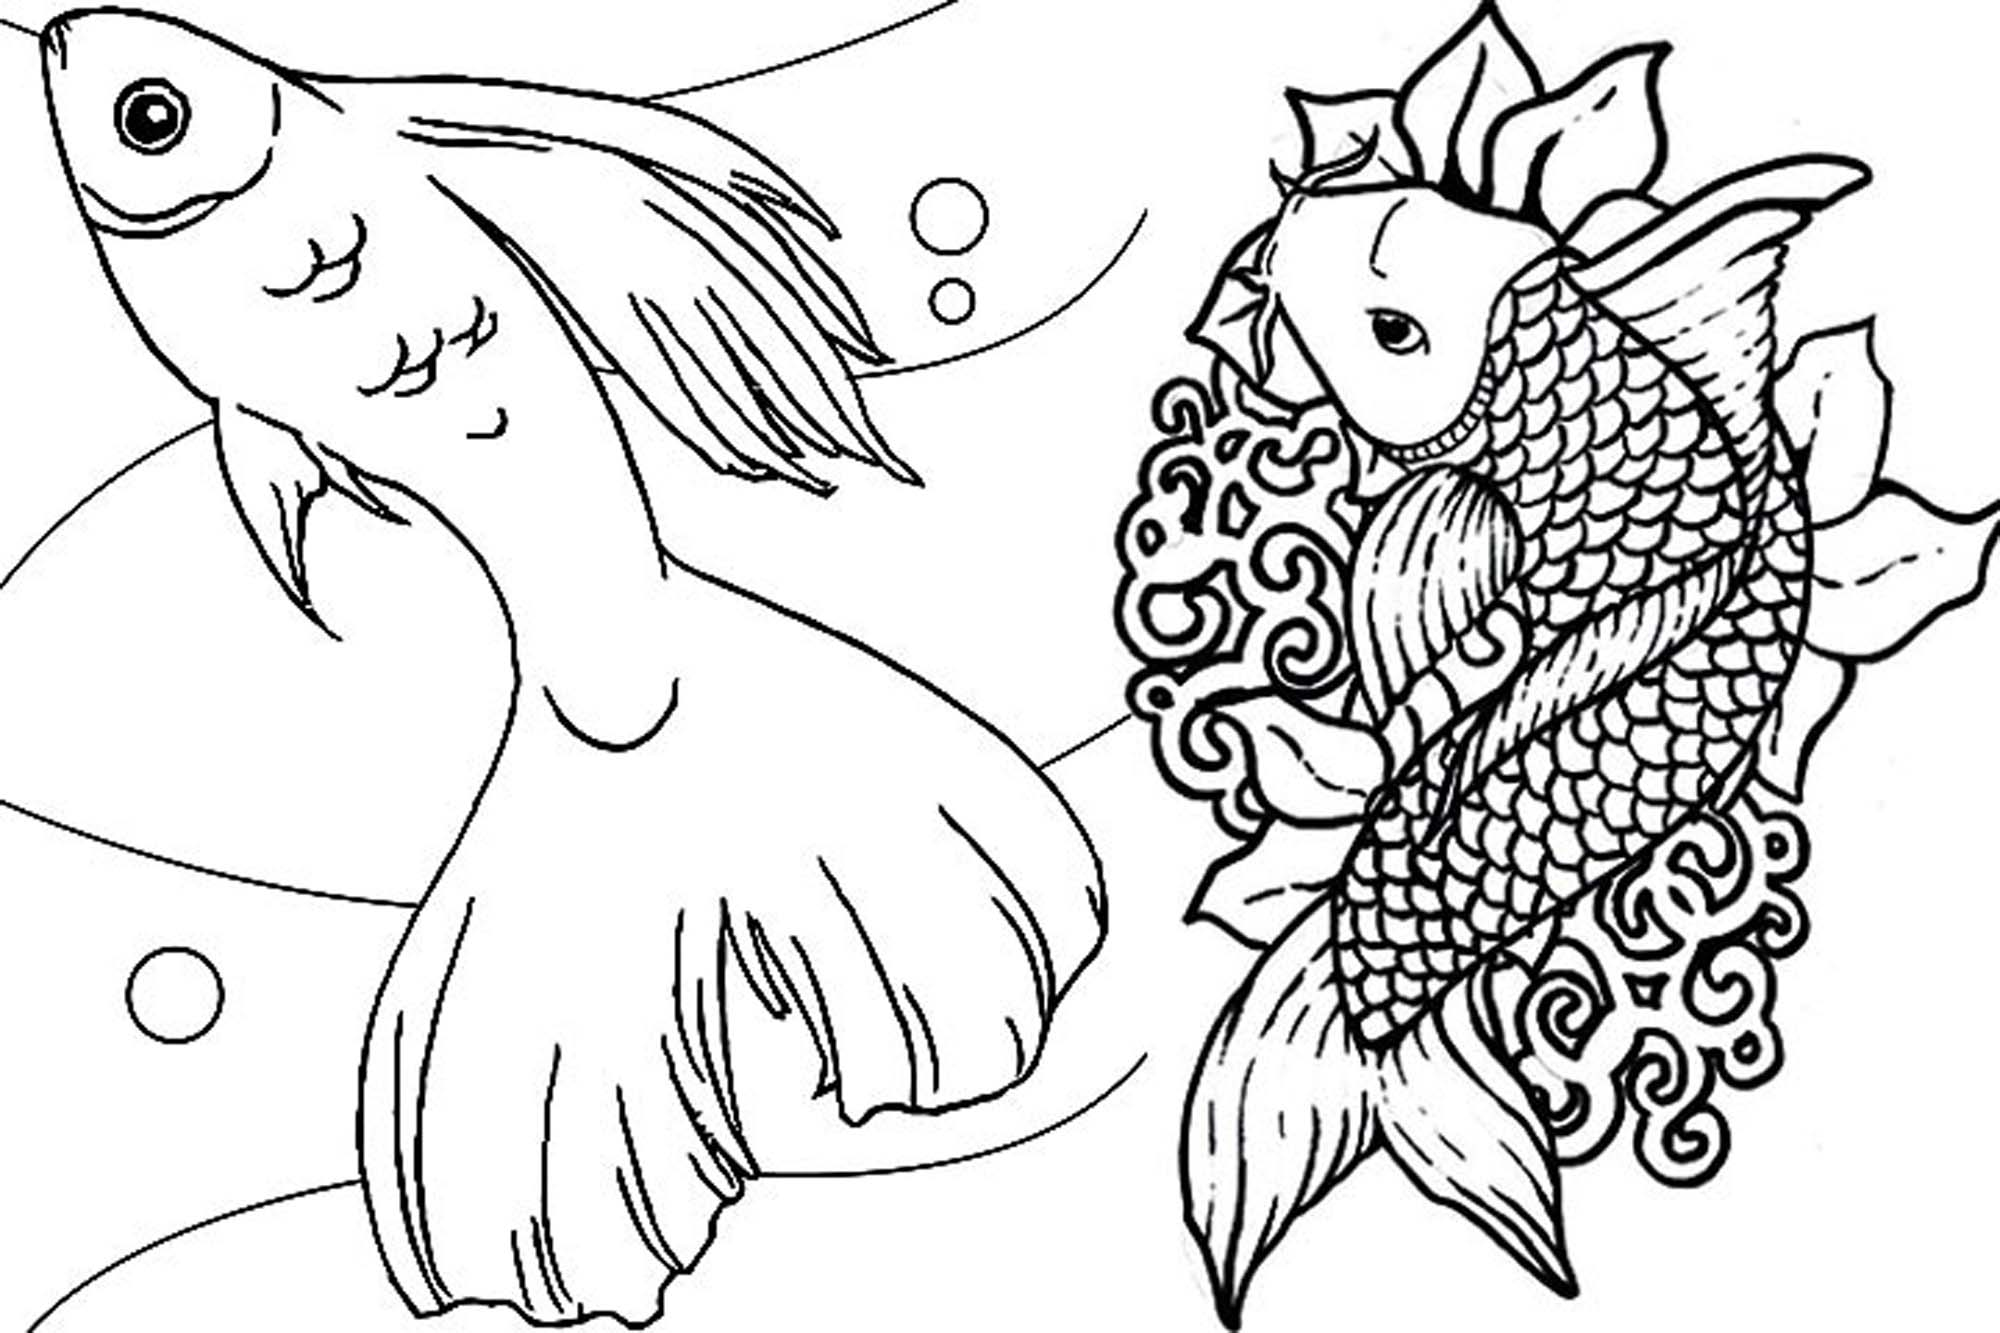 fish coloring pages for adults - Koi Fish Coloring Pages